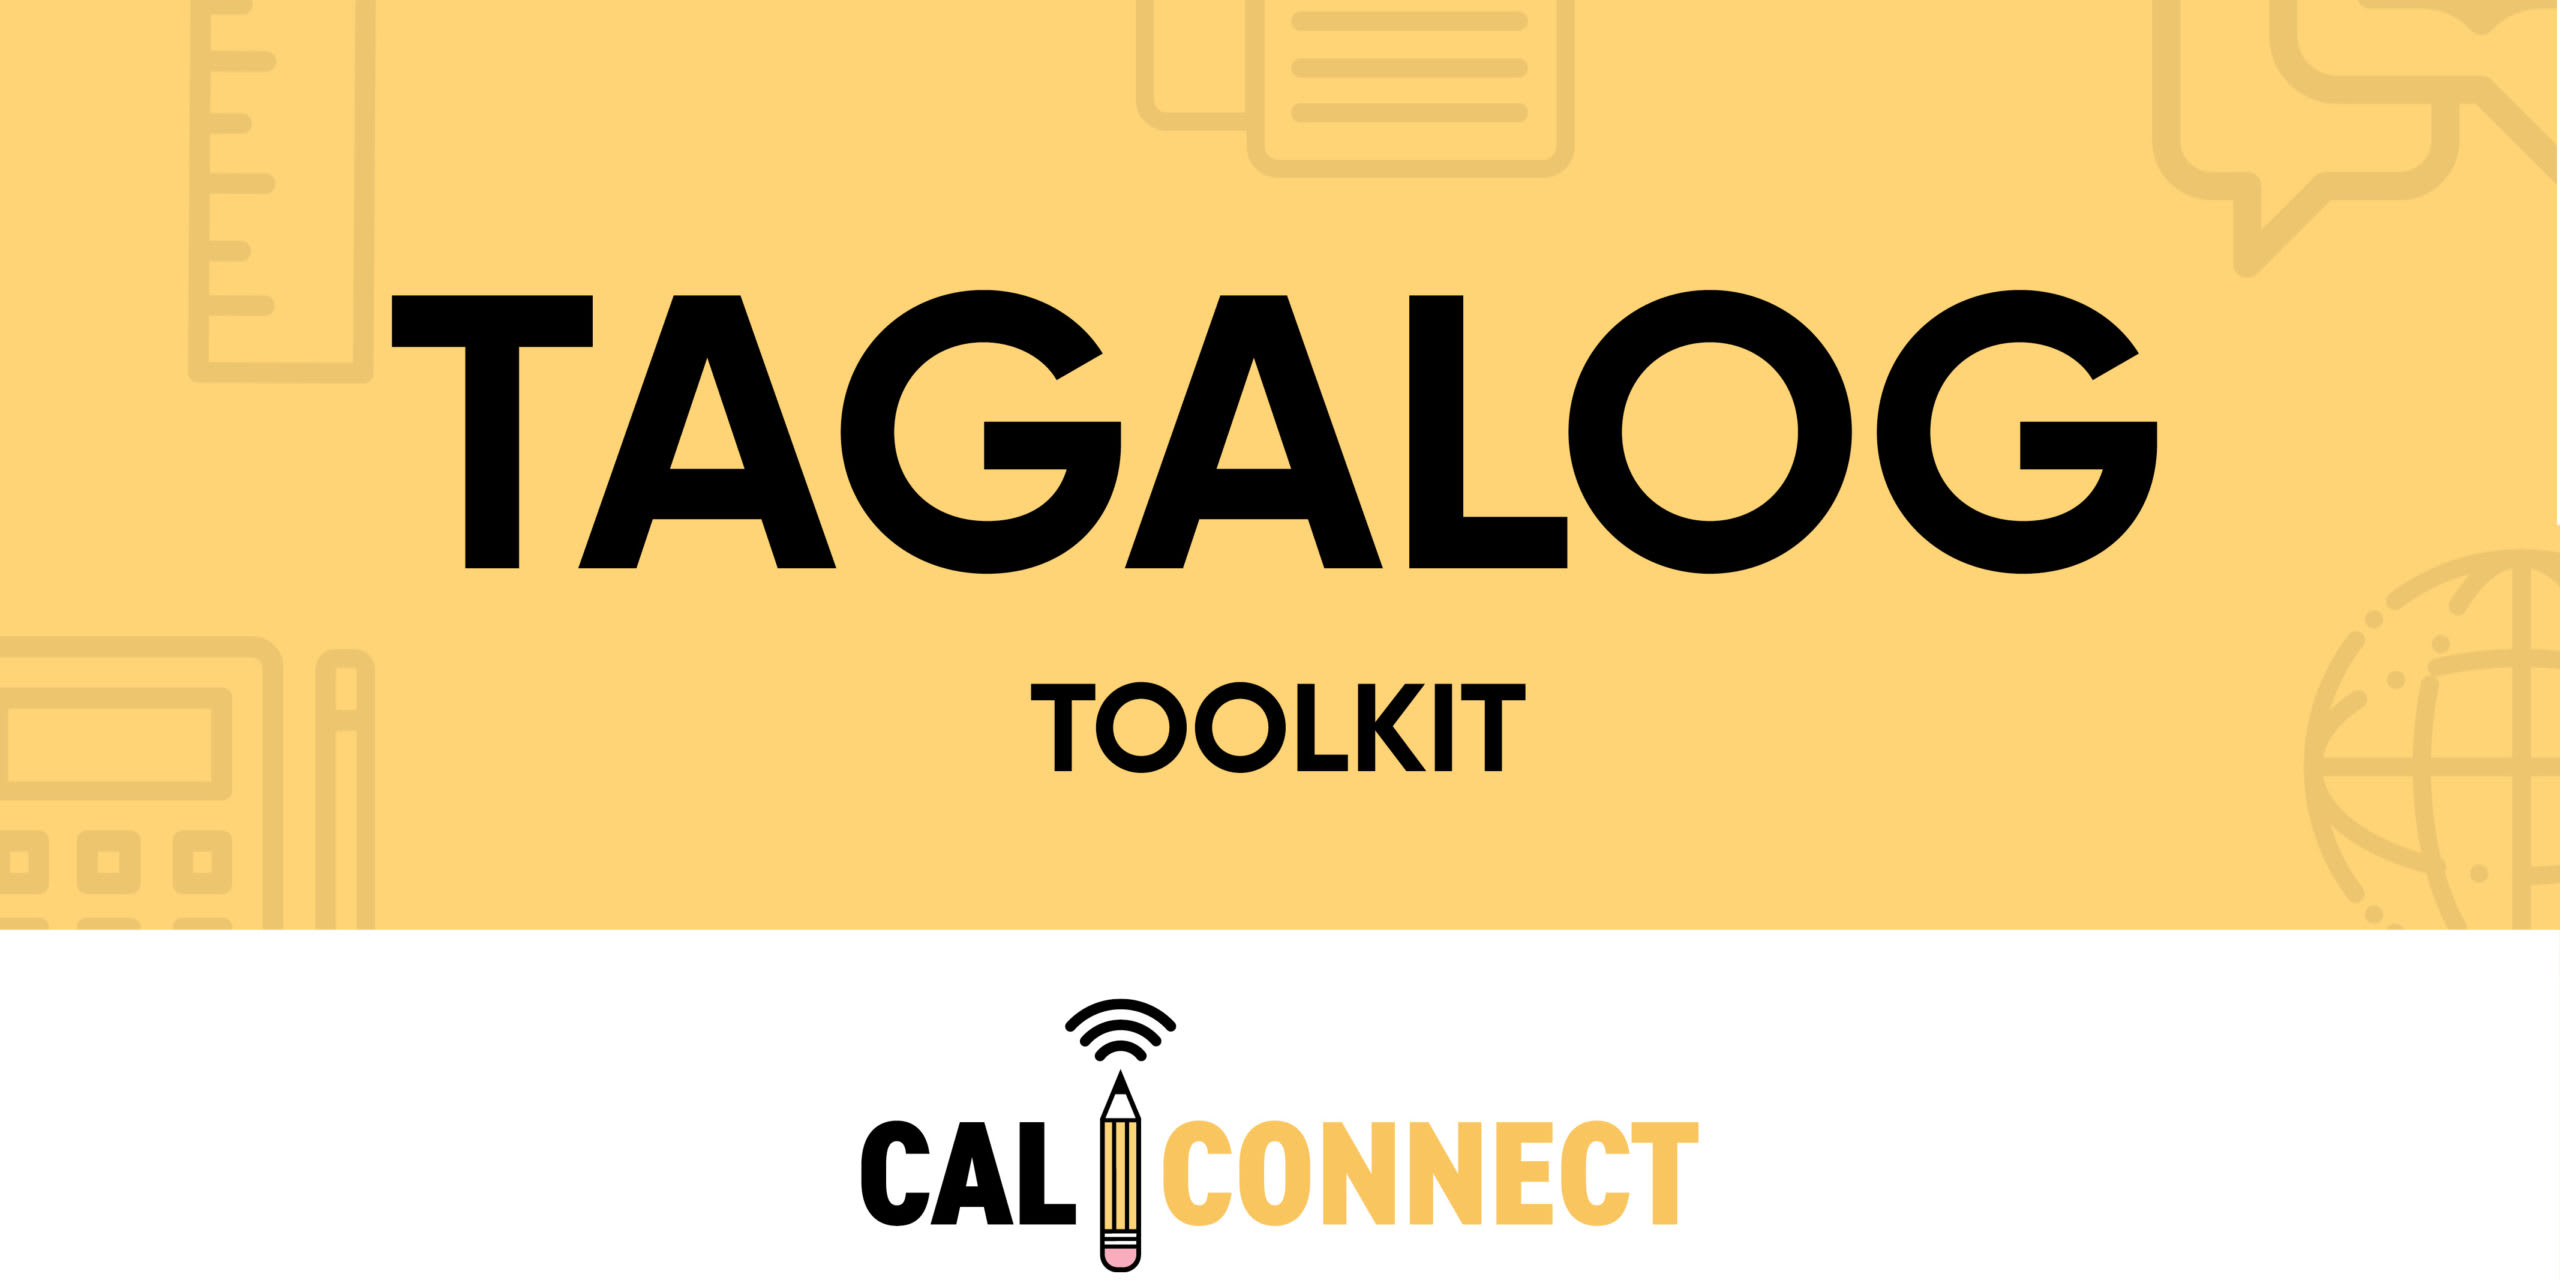 CALConnect Tagalog Toolkit